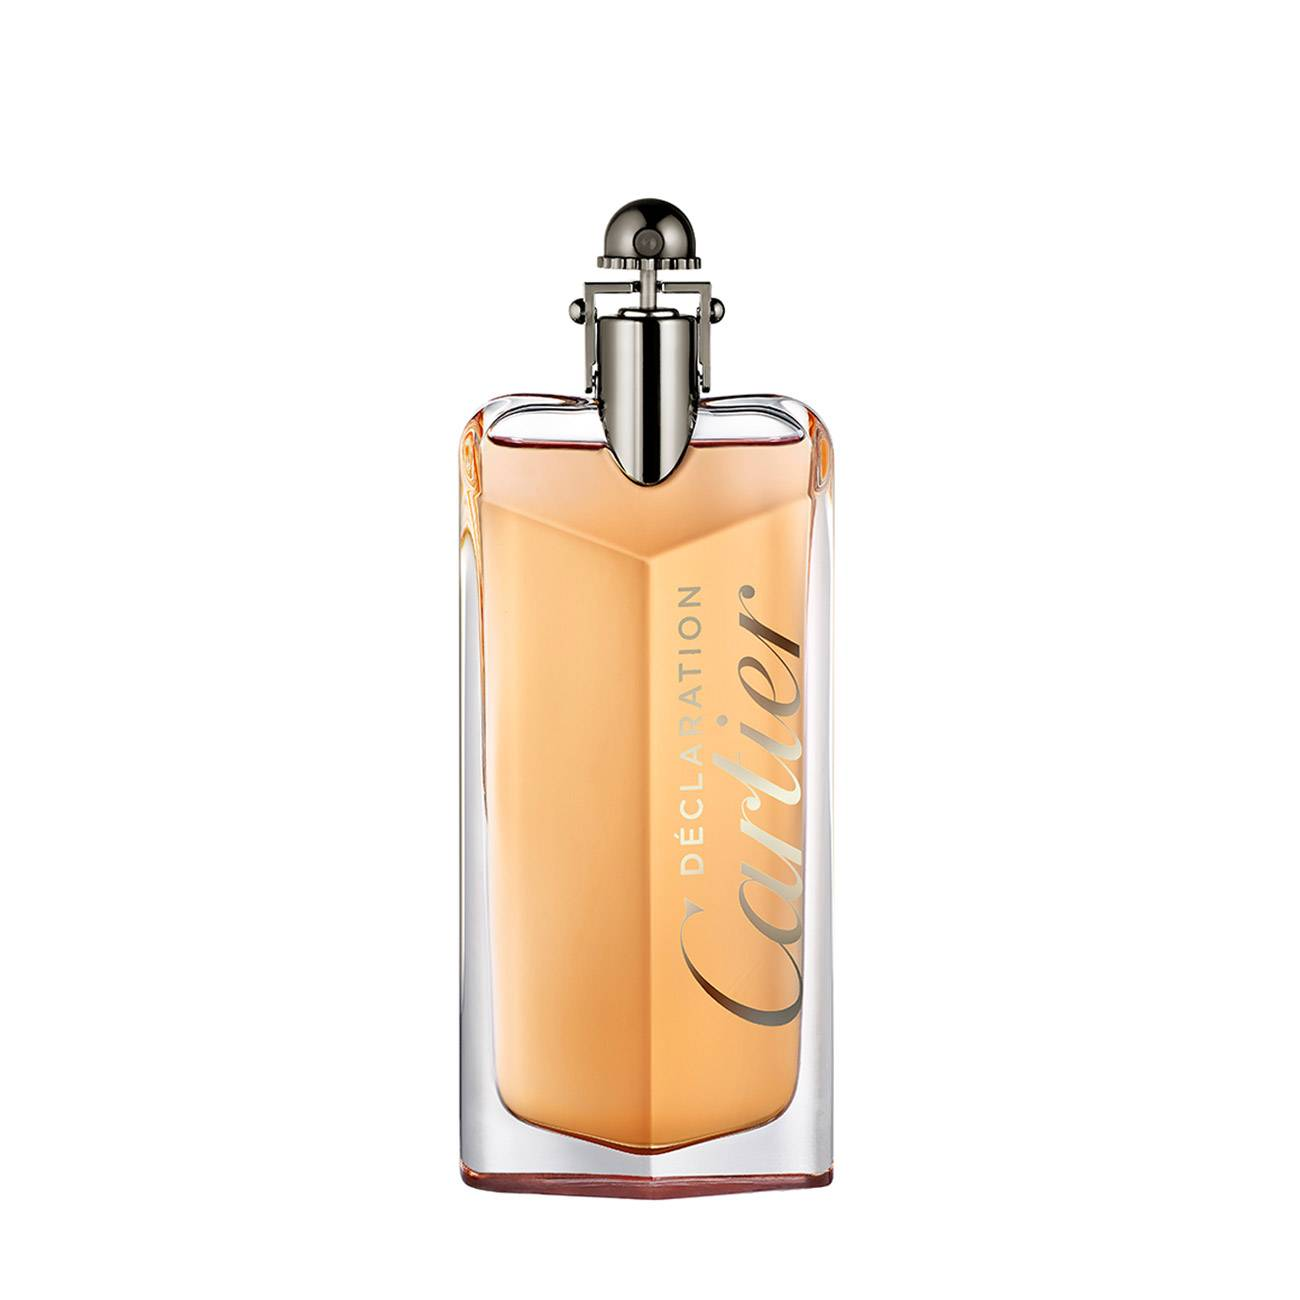 Declaration 100ml imagine